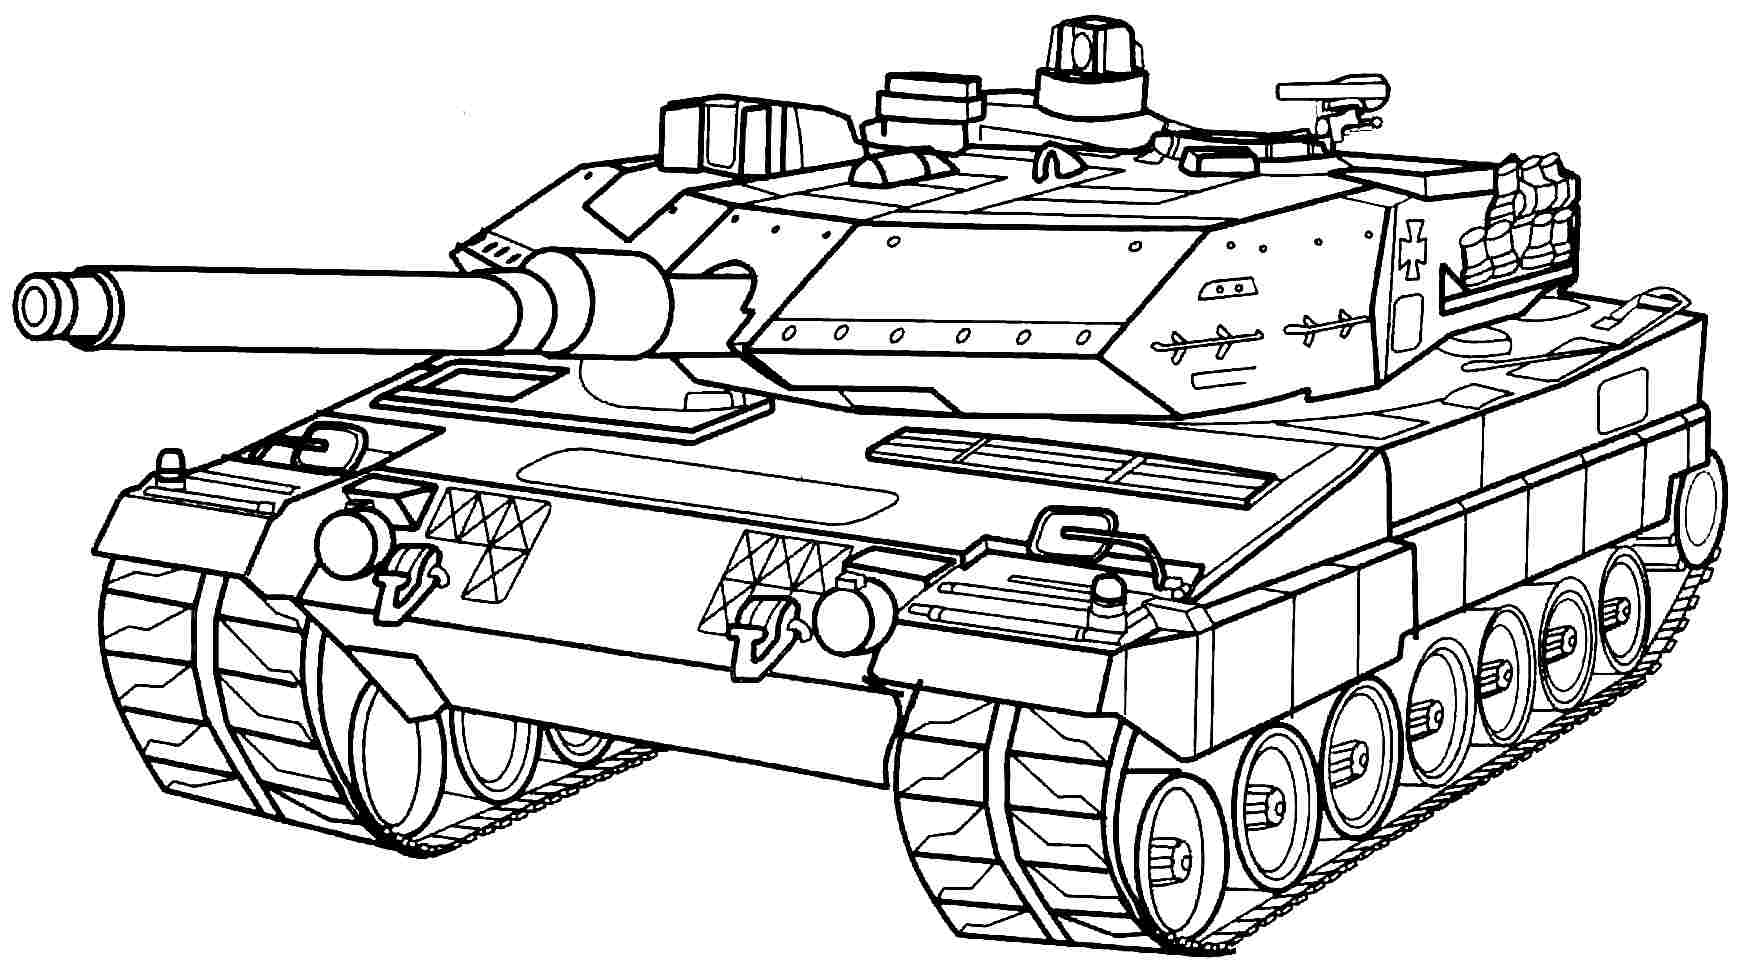 army pictures to color drawing military soldier coloring pages color luna color army pictures to